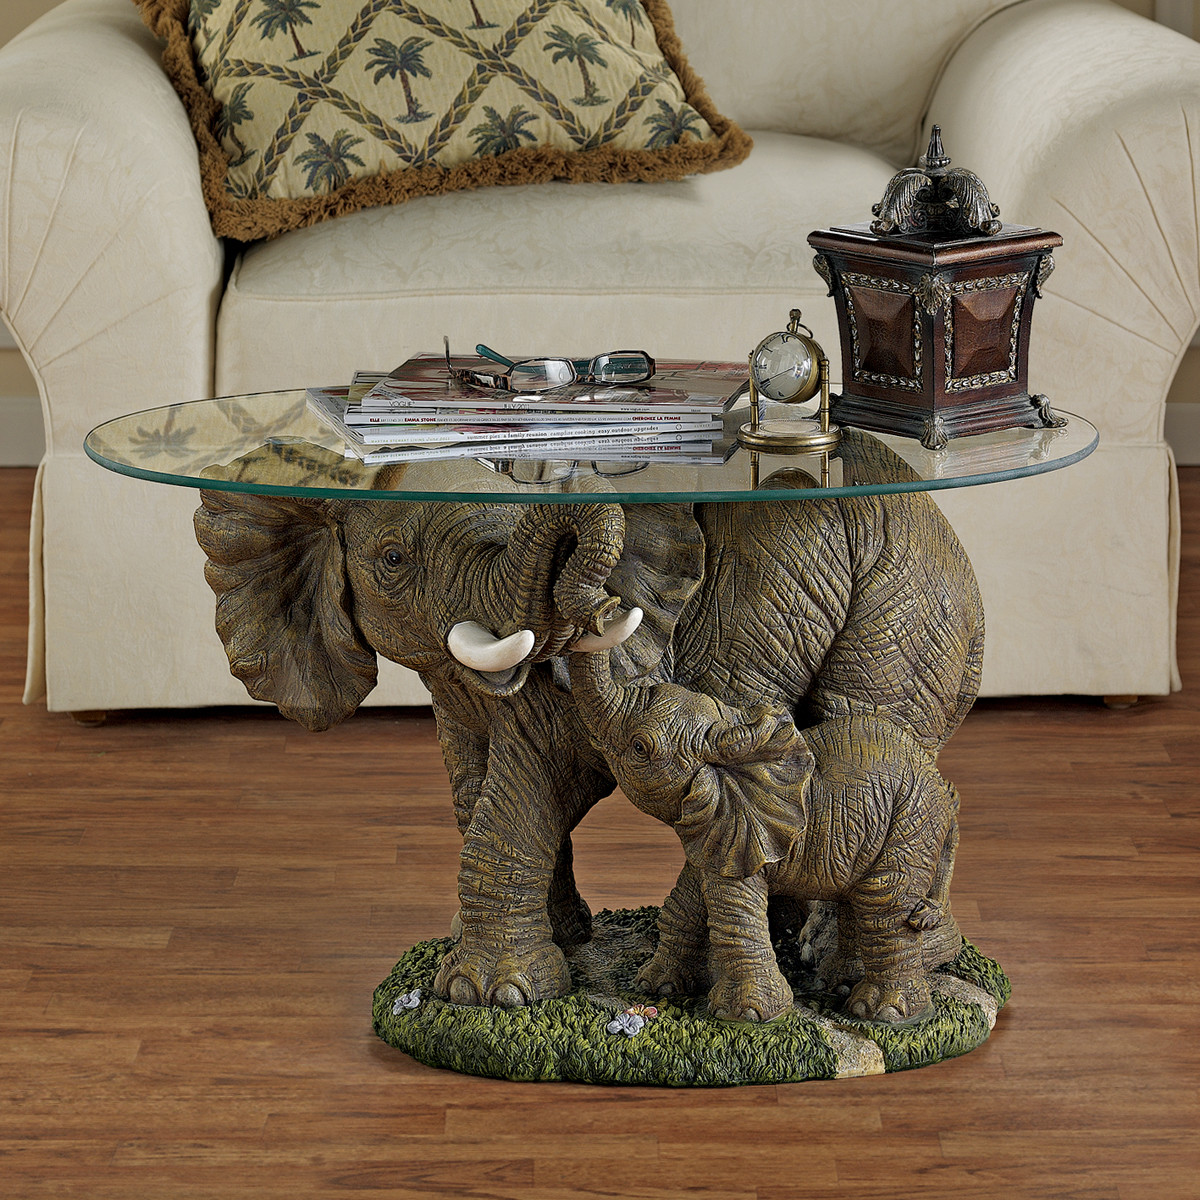 design-toscano-elephants-majesty-coffee-table-with-glass-top